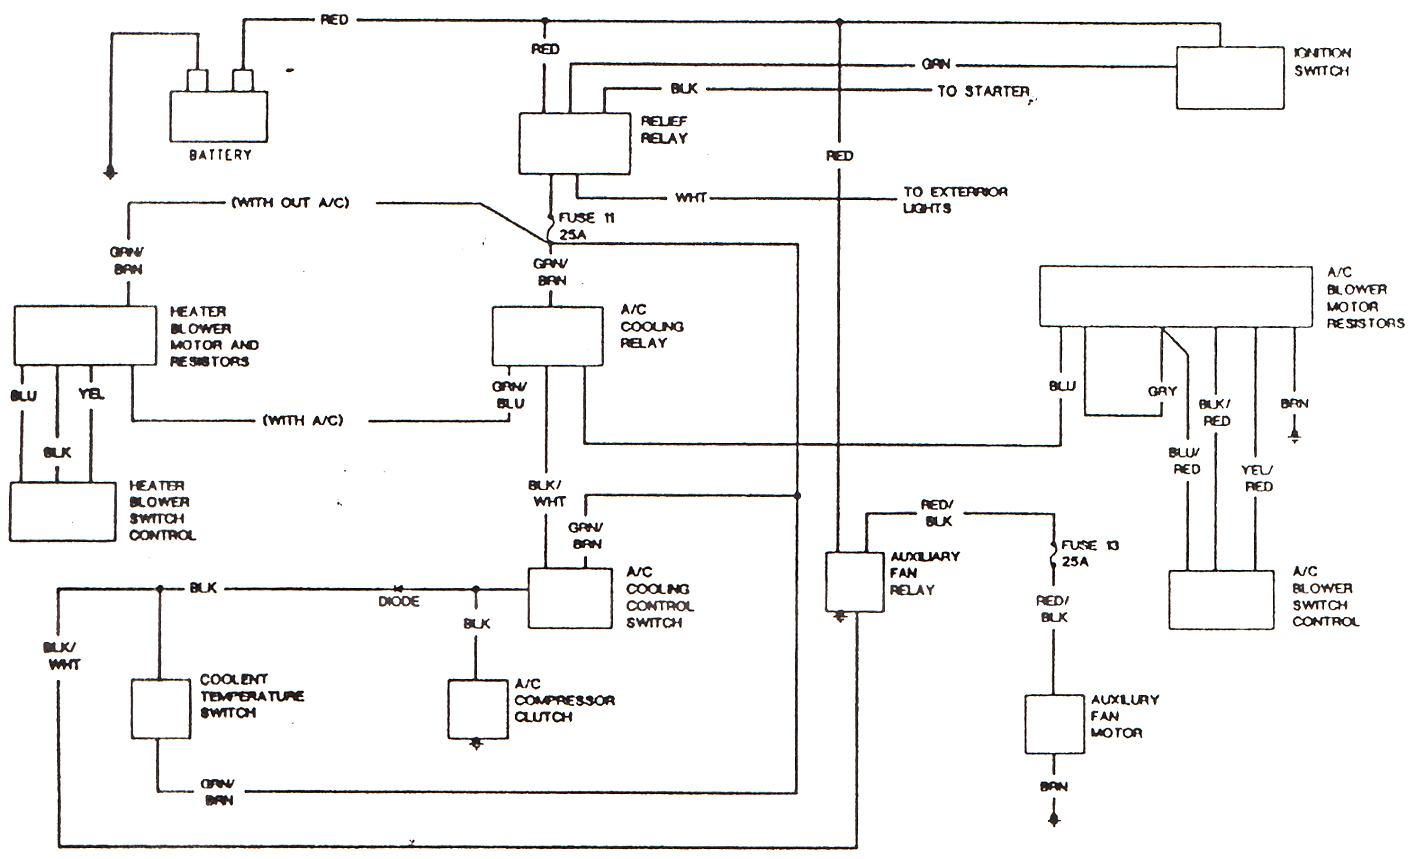 Ac motor diagram ac motor kit picture ac motor diagram4 cheapraybanclubmaster